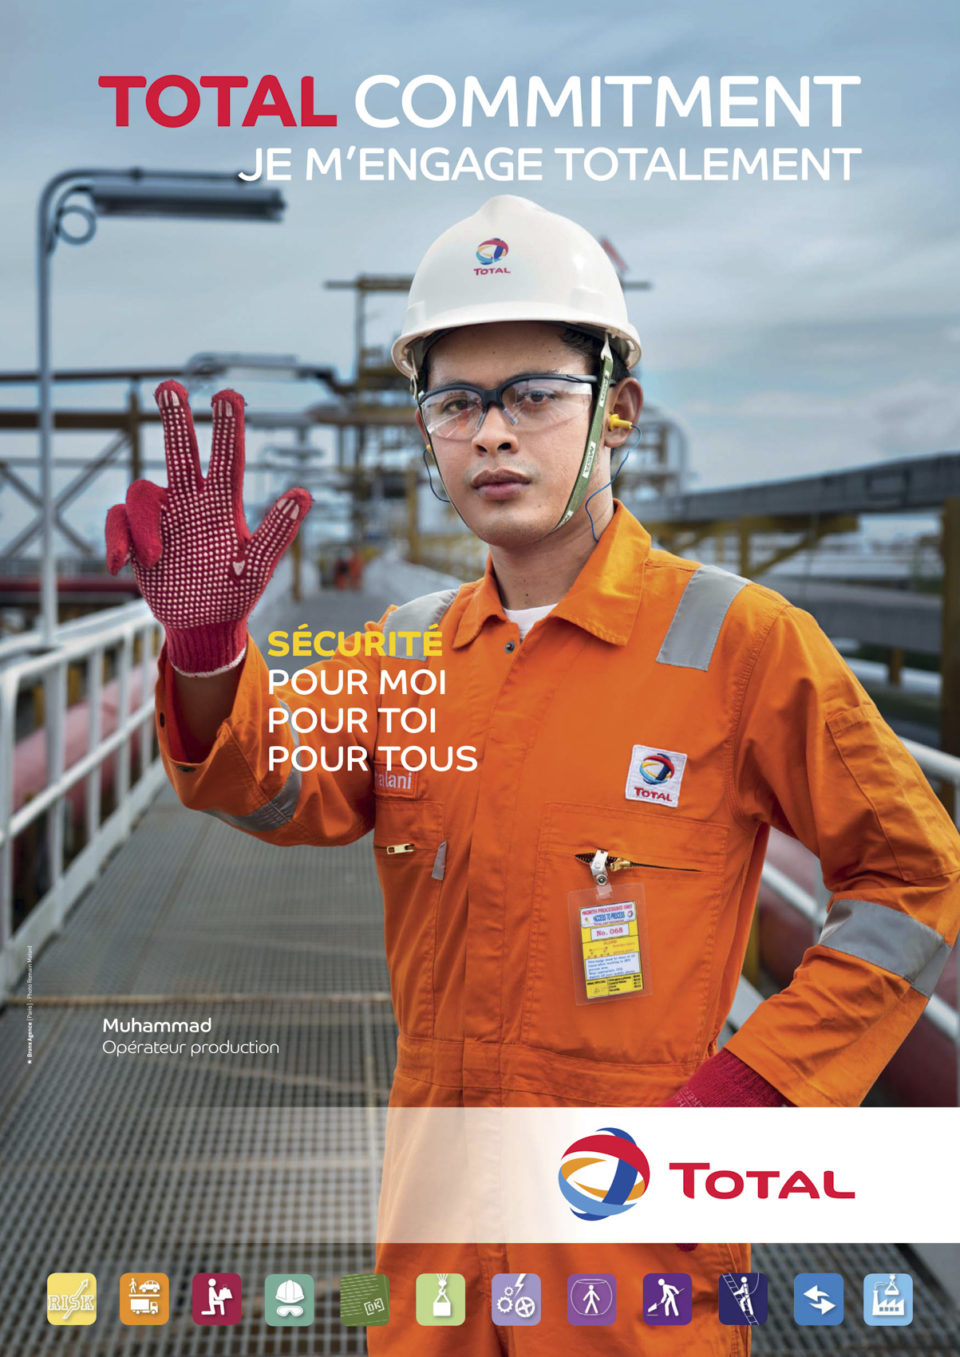 TOTAL, world day for safety campaign.